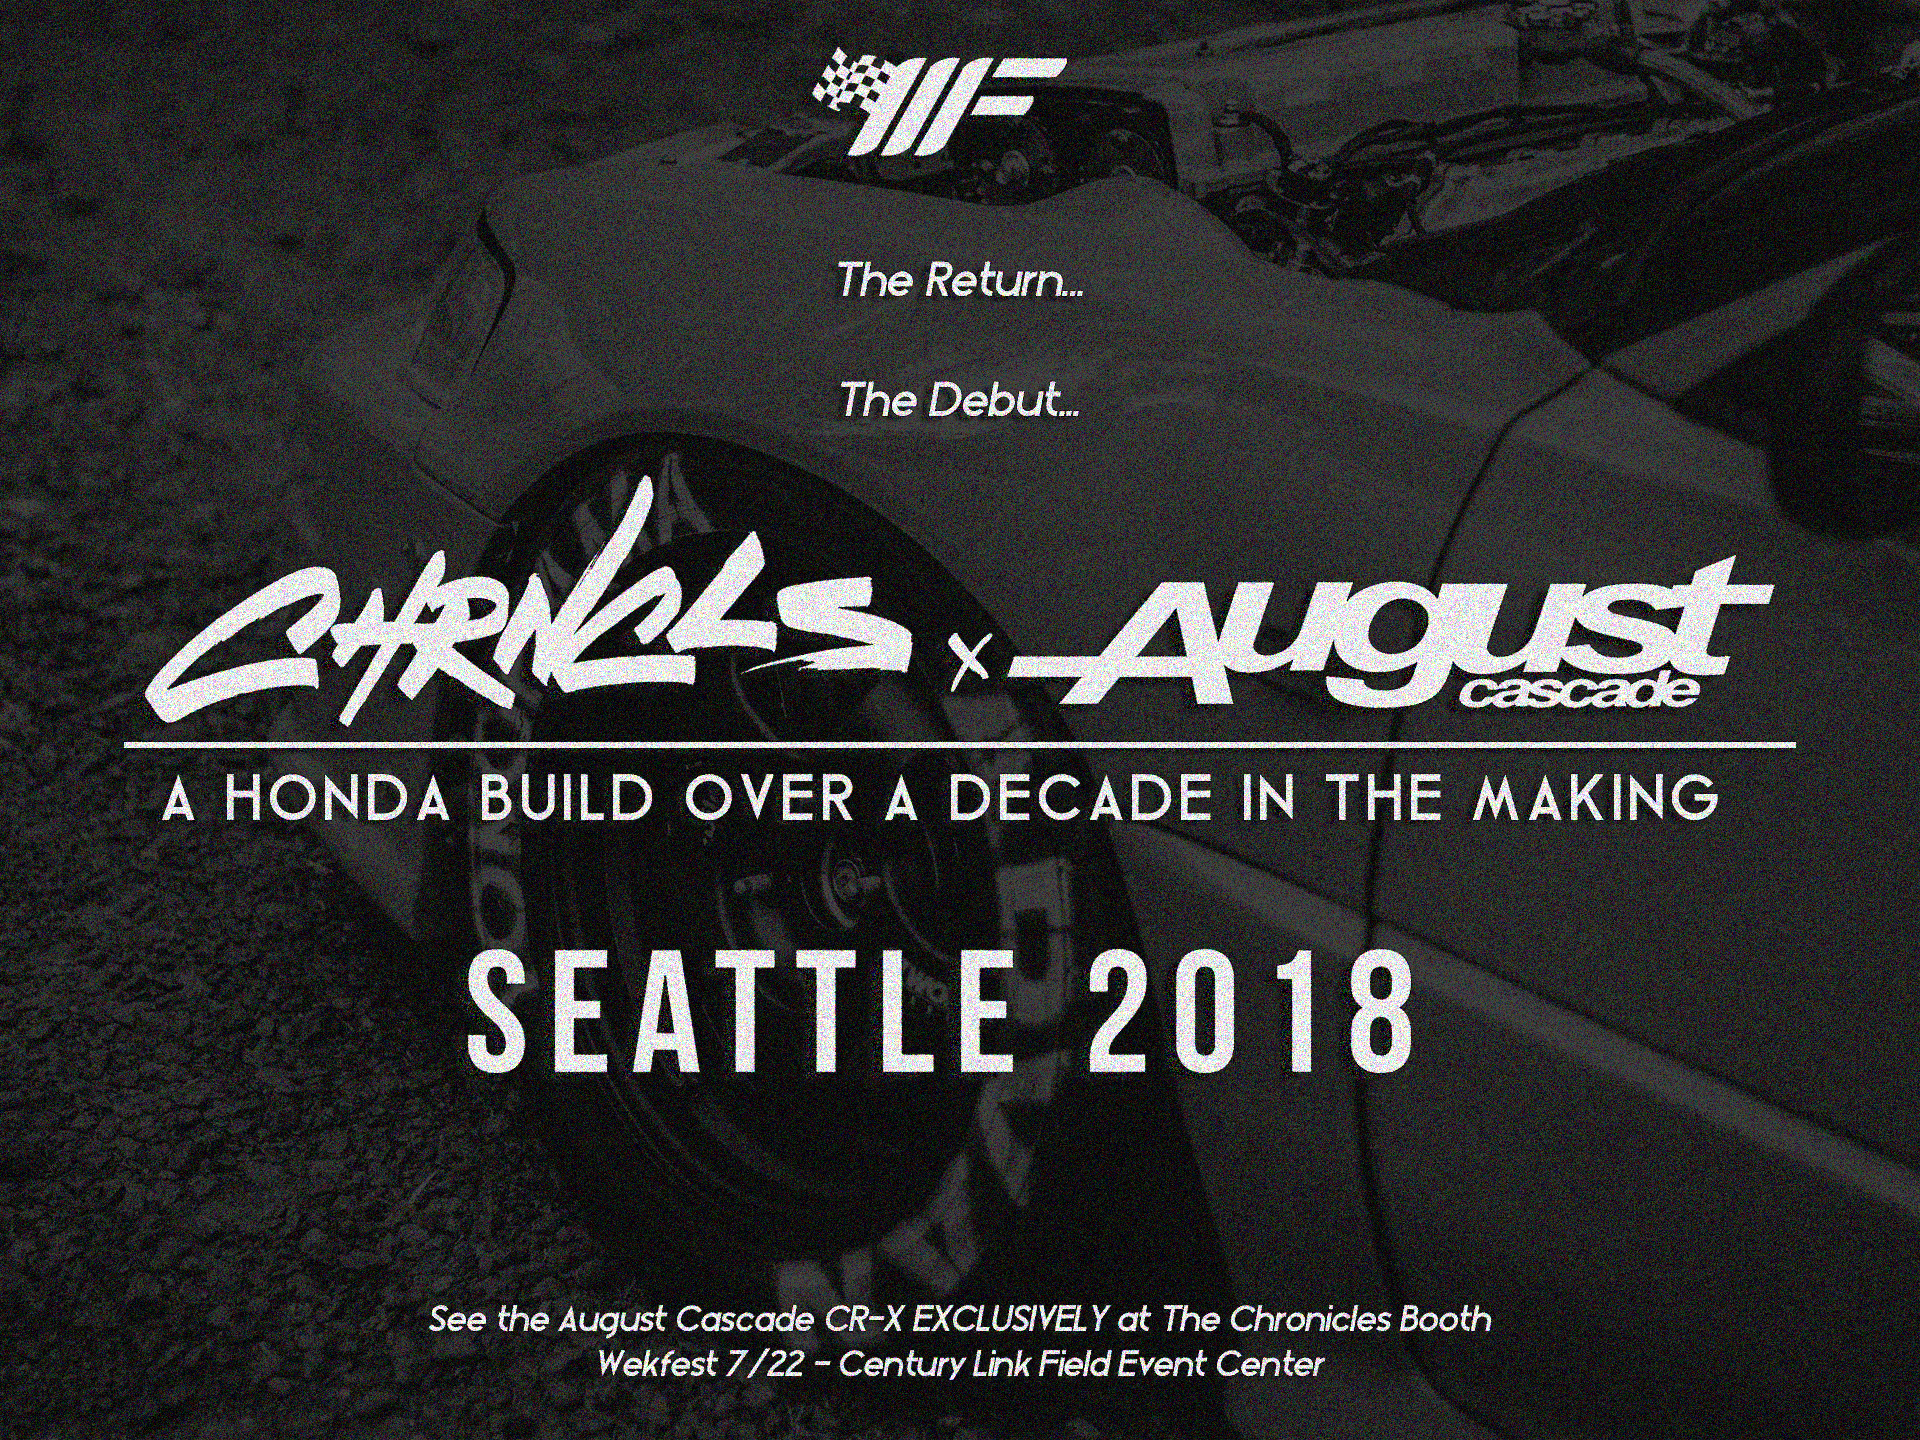 Chronicles x August Cascade for Wekfest Seattle 2018…